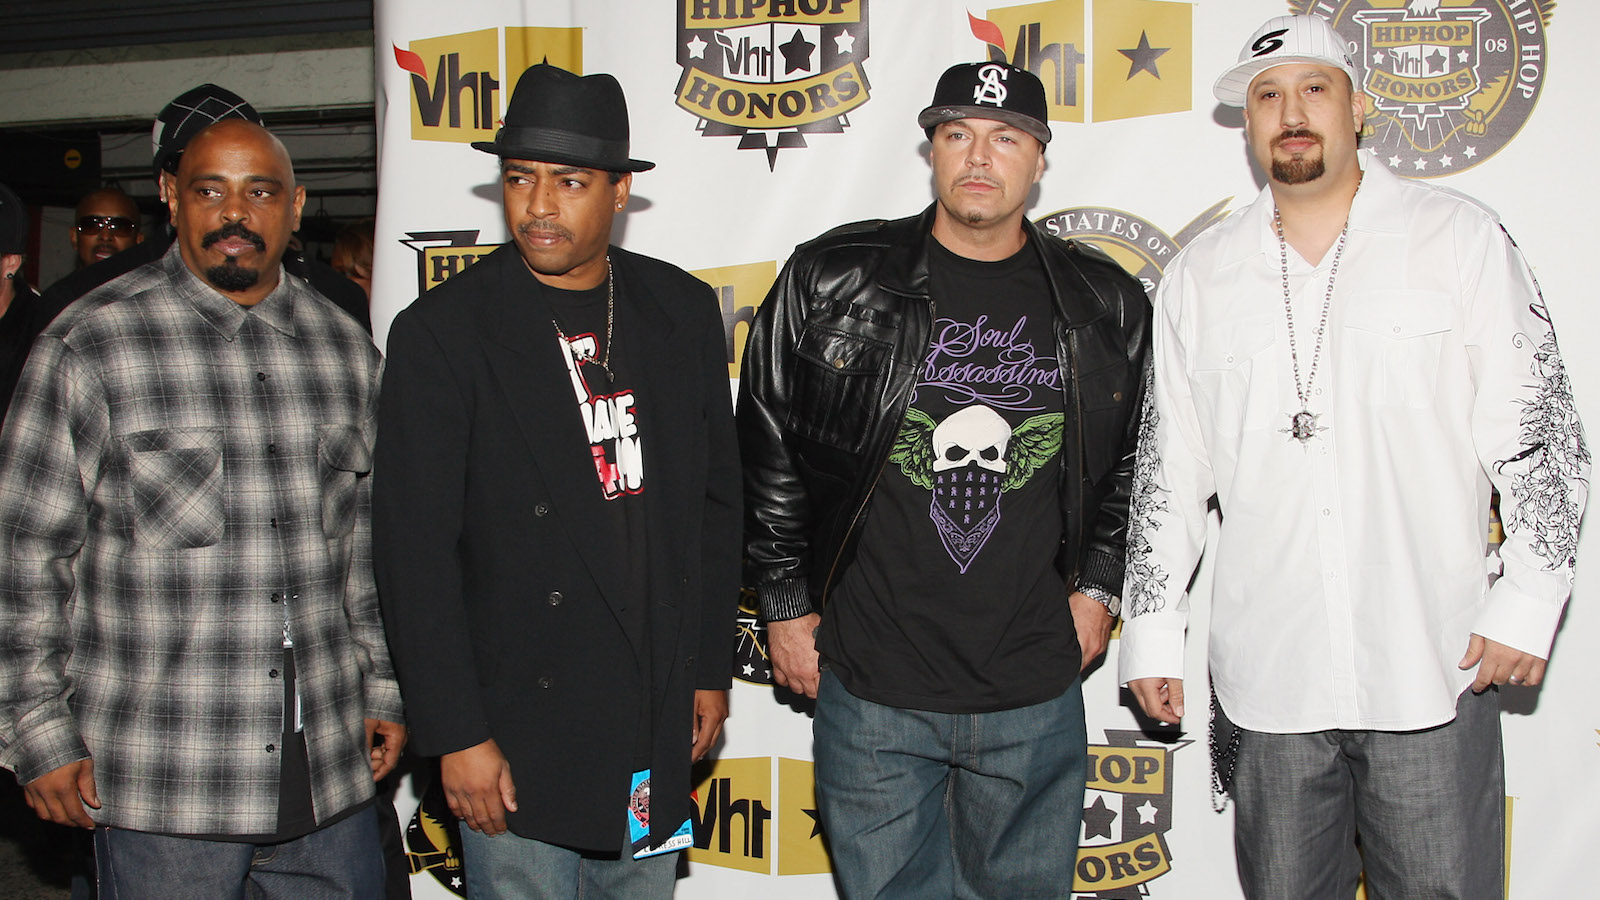 Cypress Hill hace historia, recibiendo una estrella en el Hollywood Walk Of Fame